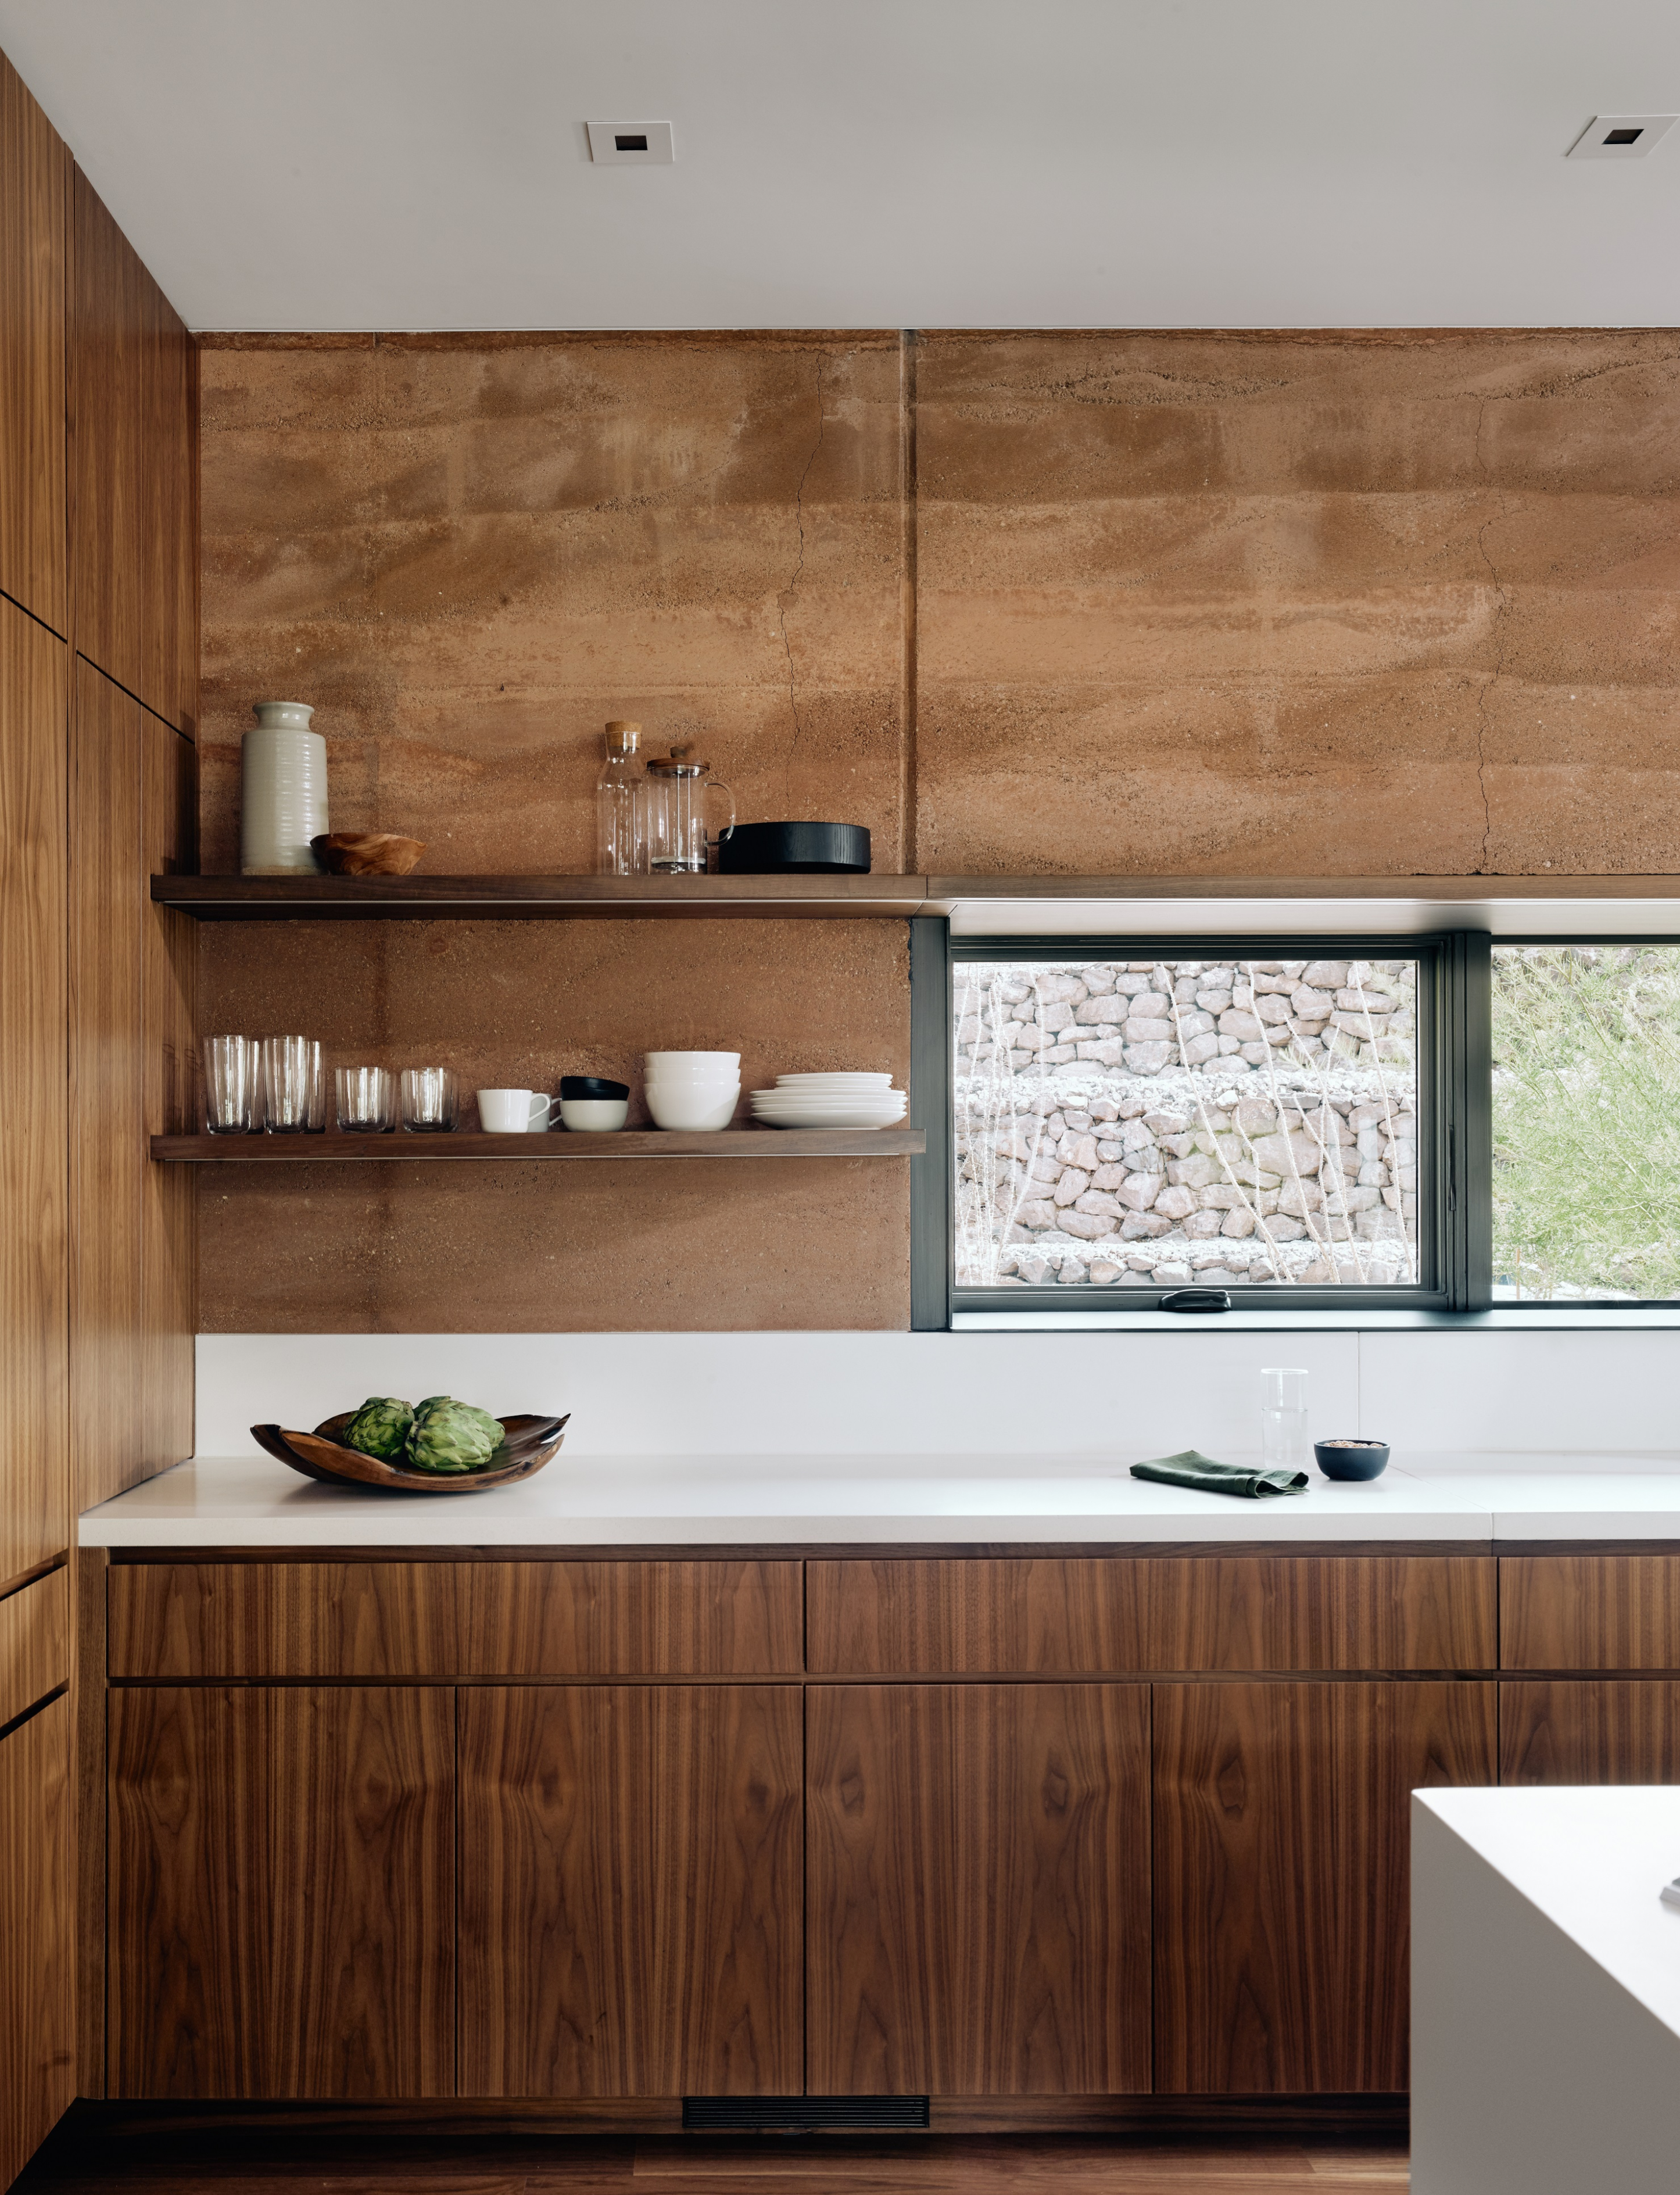 ASCAYA'S RAMMED EARTH MASTERPIECE